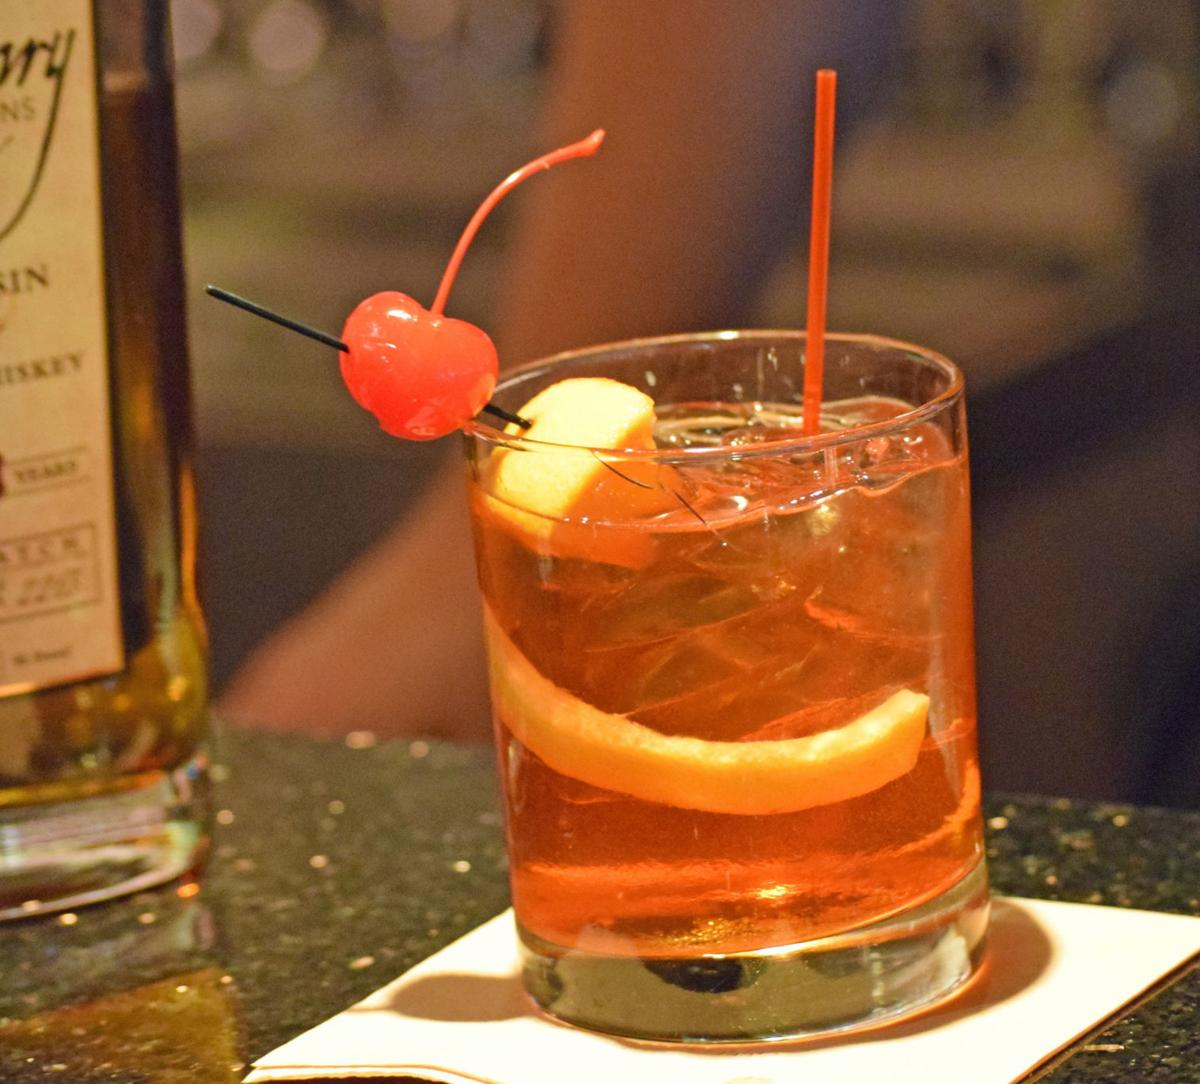 Pick your Poison: Lake Delton's Del-Bar offers a twist on a